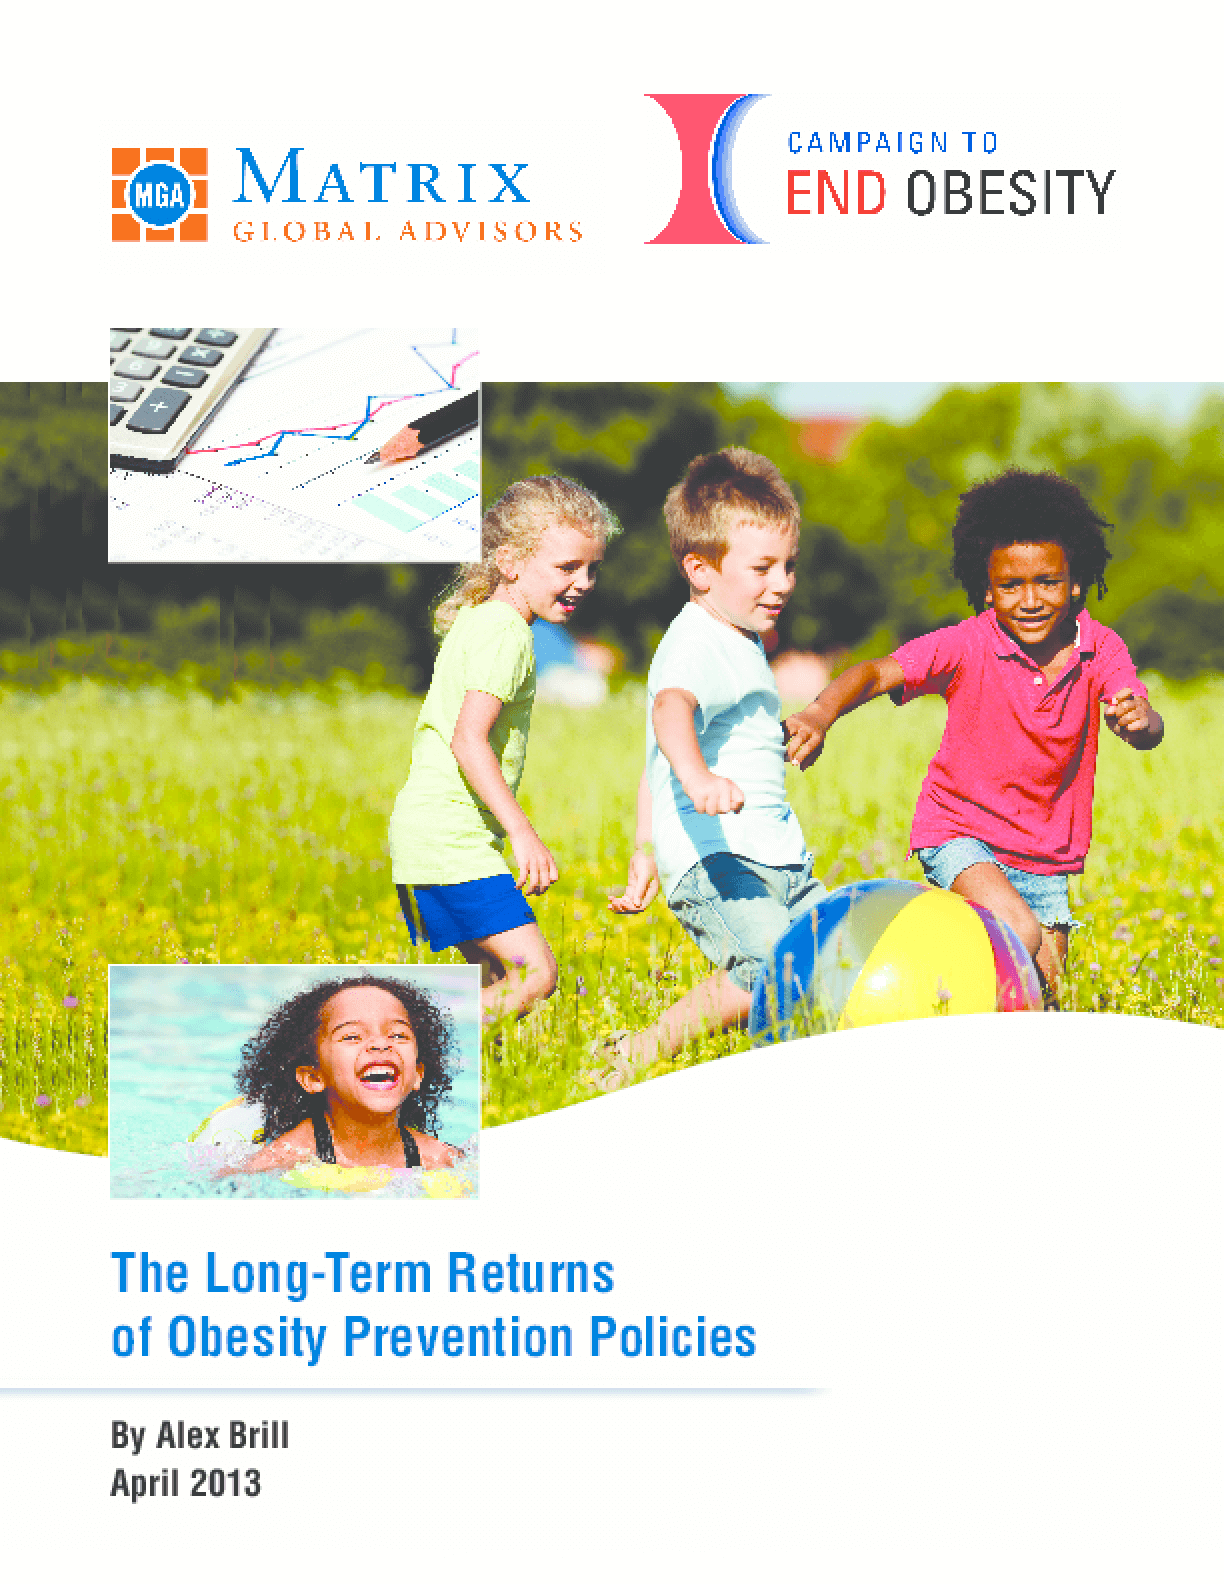 The Long-Term Returns of Obesity Prevention Policies